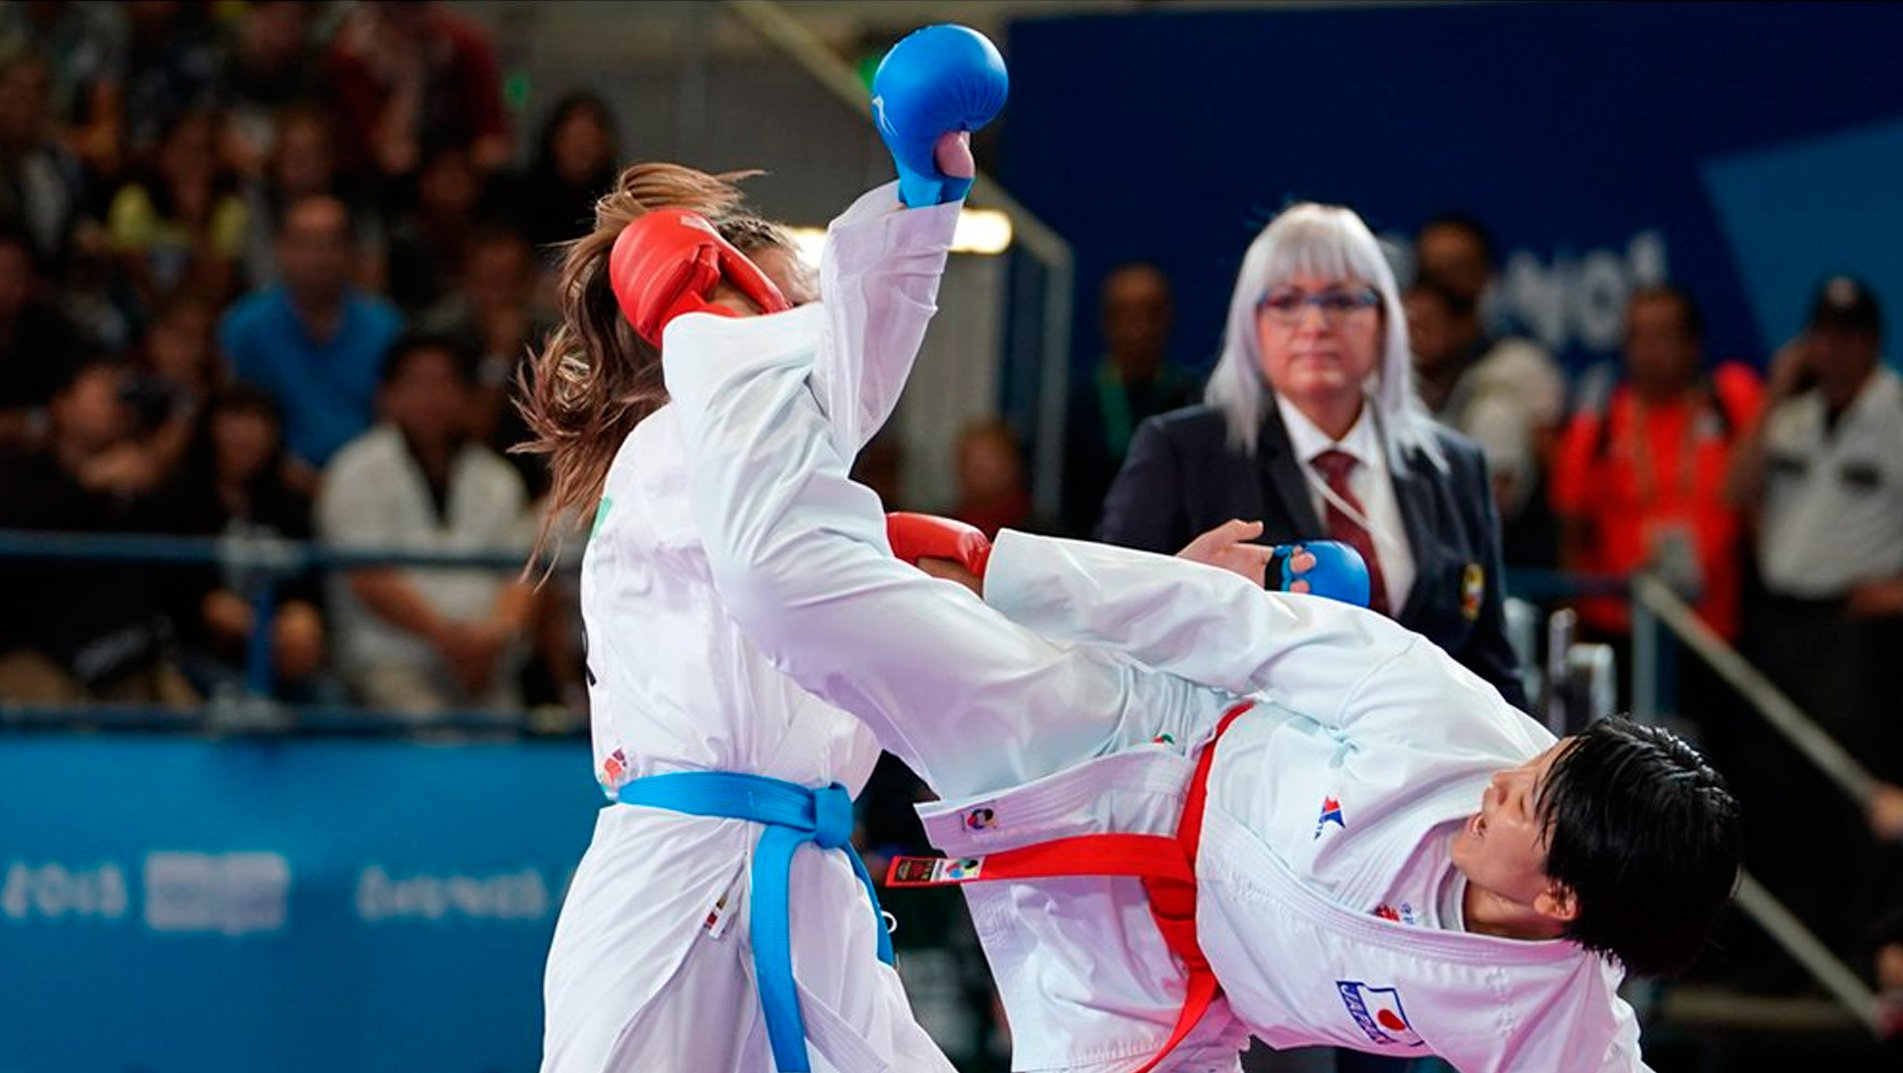 Karate wraps up historic participation at Youth Olympic Games